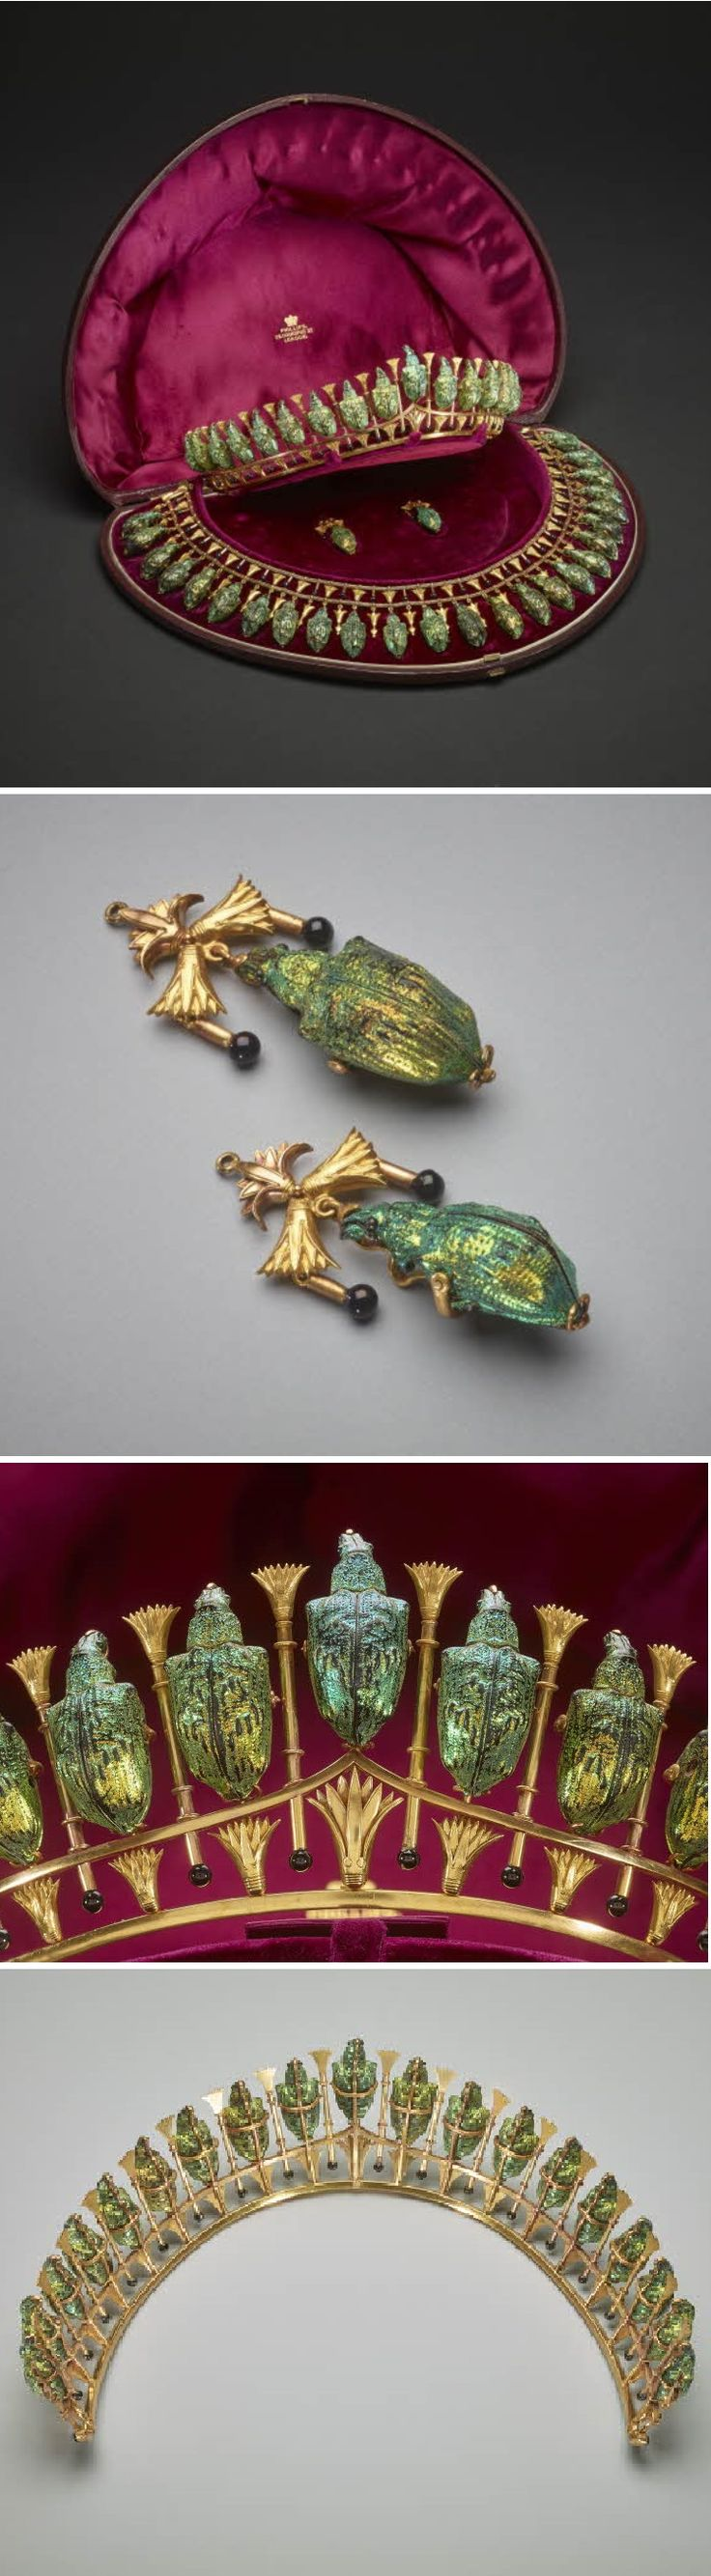 Lady Granville's Egyptian Revival parure, Phillips Bros., London, 1884-85. Comprising a tiara, necklace and earrings formed of dried South American weevils with iridescent green wing cases, mounted in gold in the Egyptian taste with lotus motifs. On the n http://amzn.to/2sdPx7Z